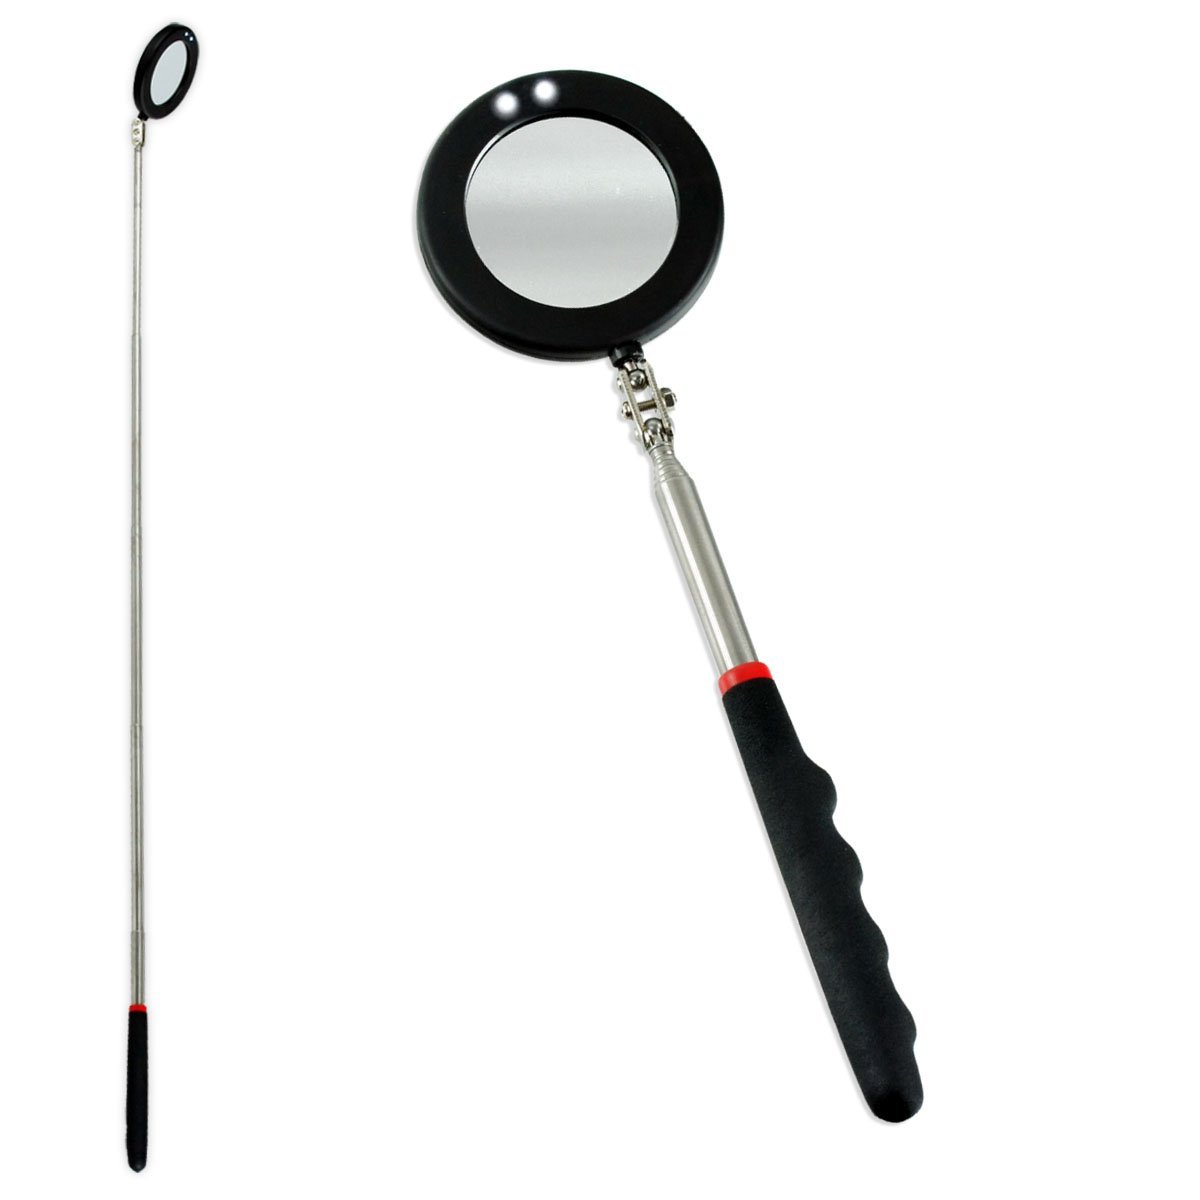 2 LED Telescoping Mirror- View Hard to Reach Areas With Ease!